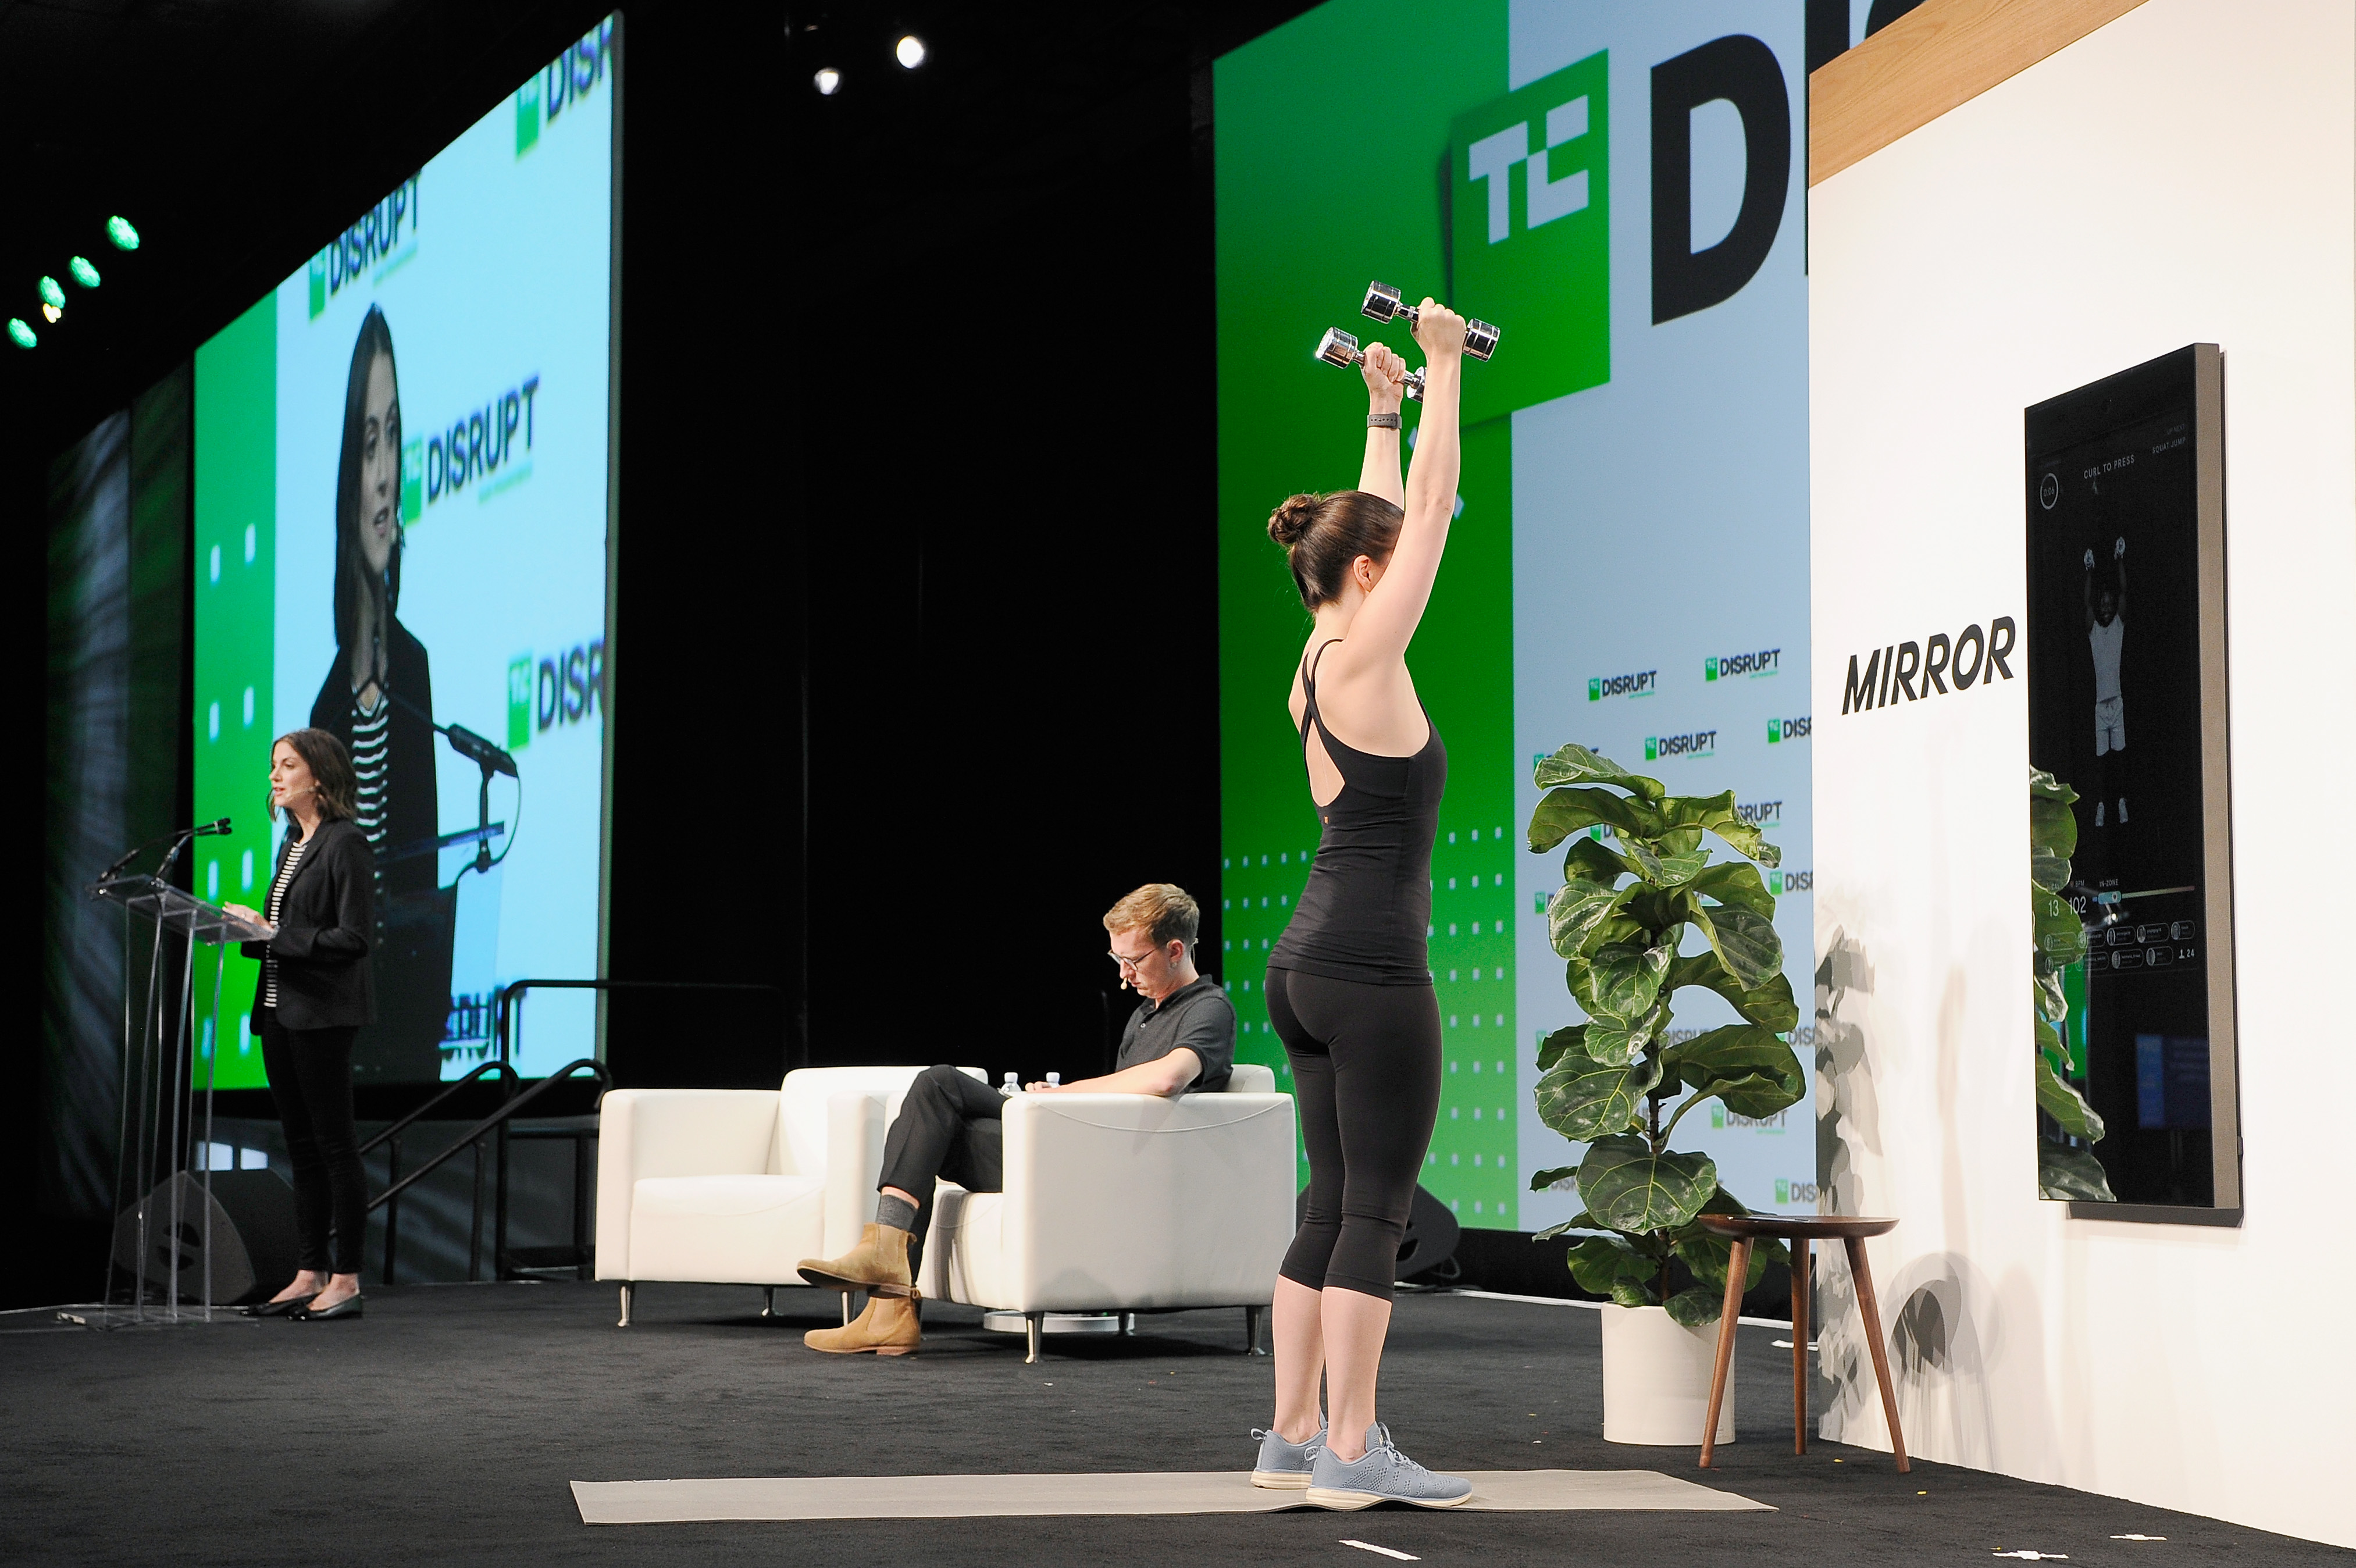 Fitness startup Mirror nears $300M valuation with fresh funding